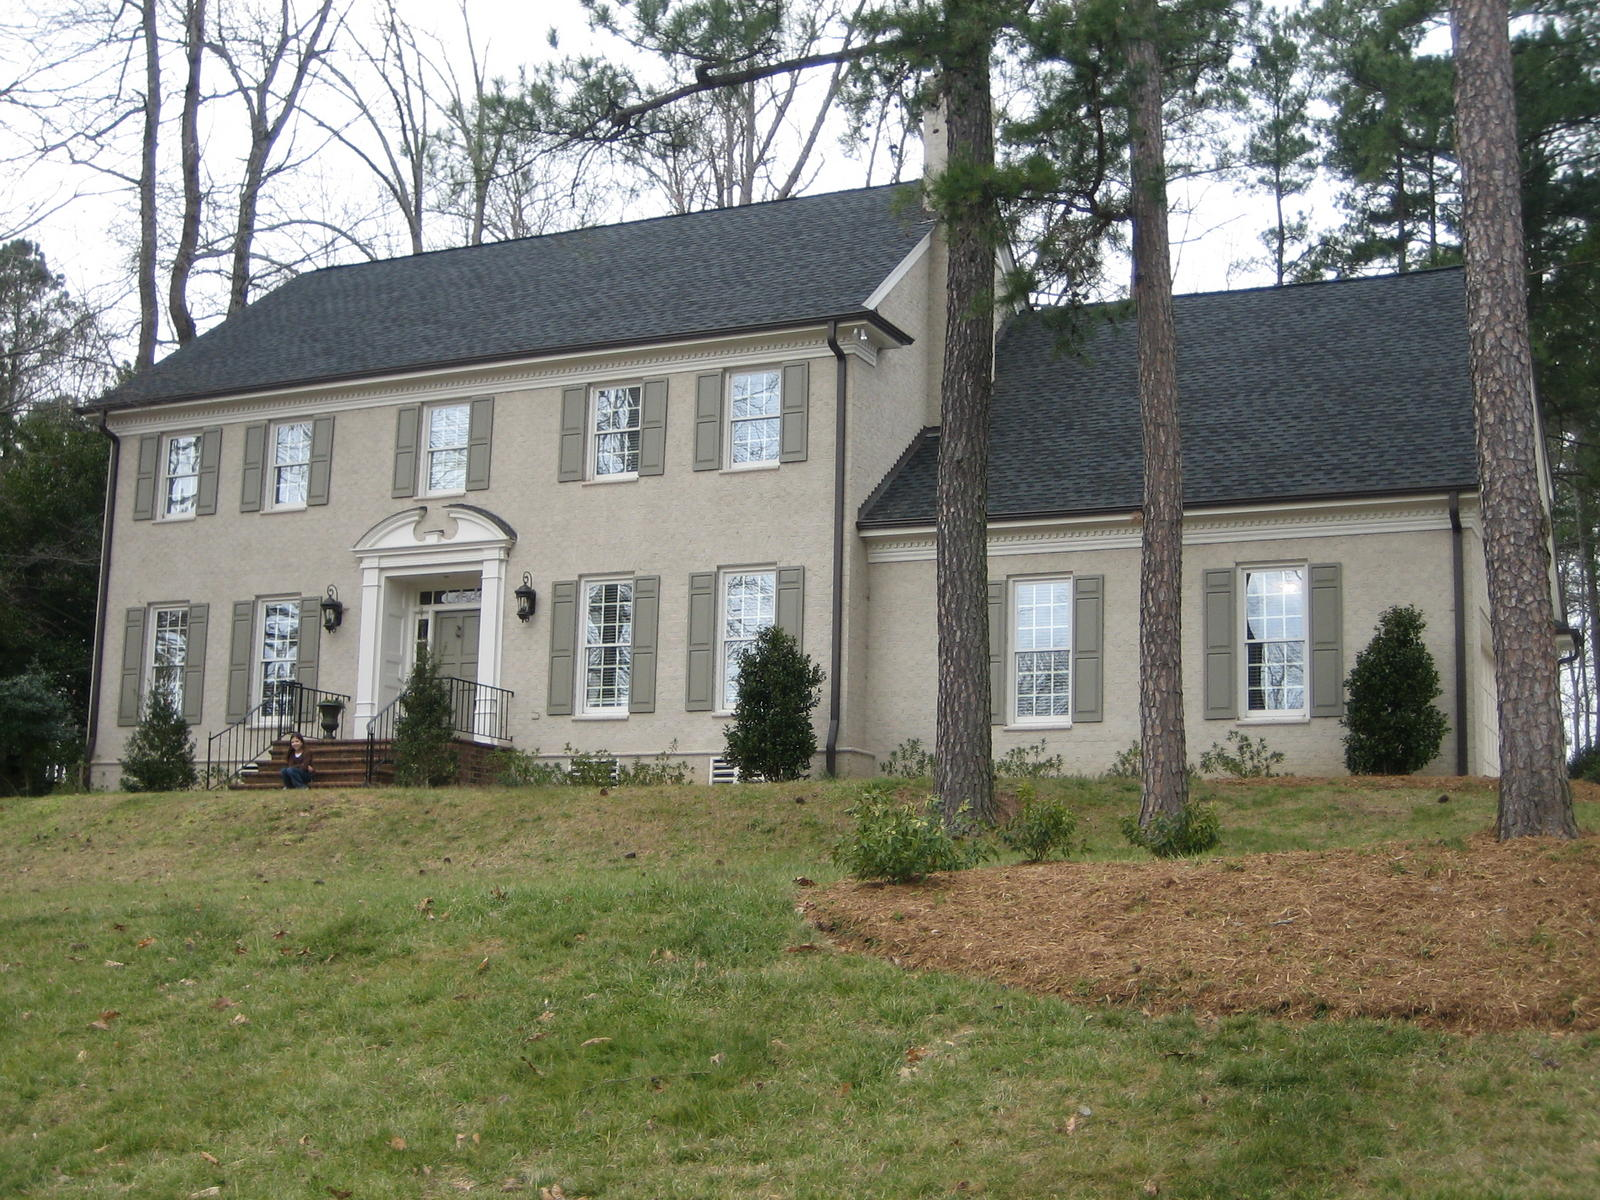 colonial revival federal style with stucco or painted brick siding